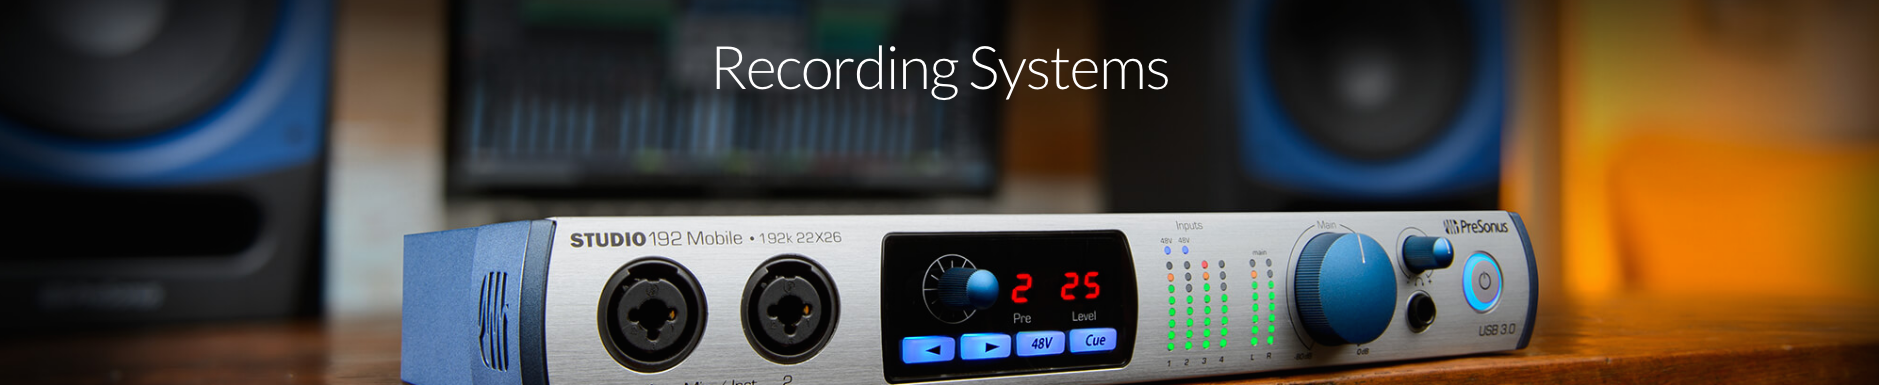 Presonus Recording Systems Dealer